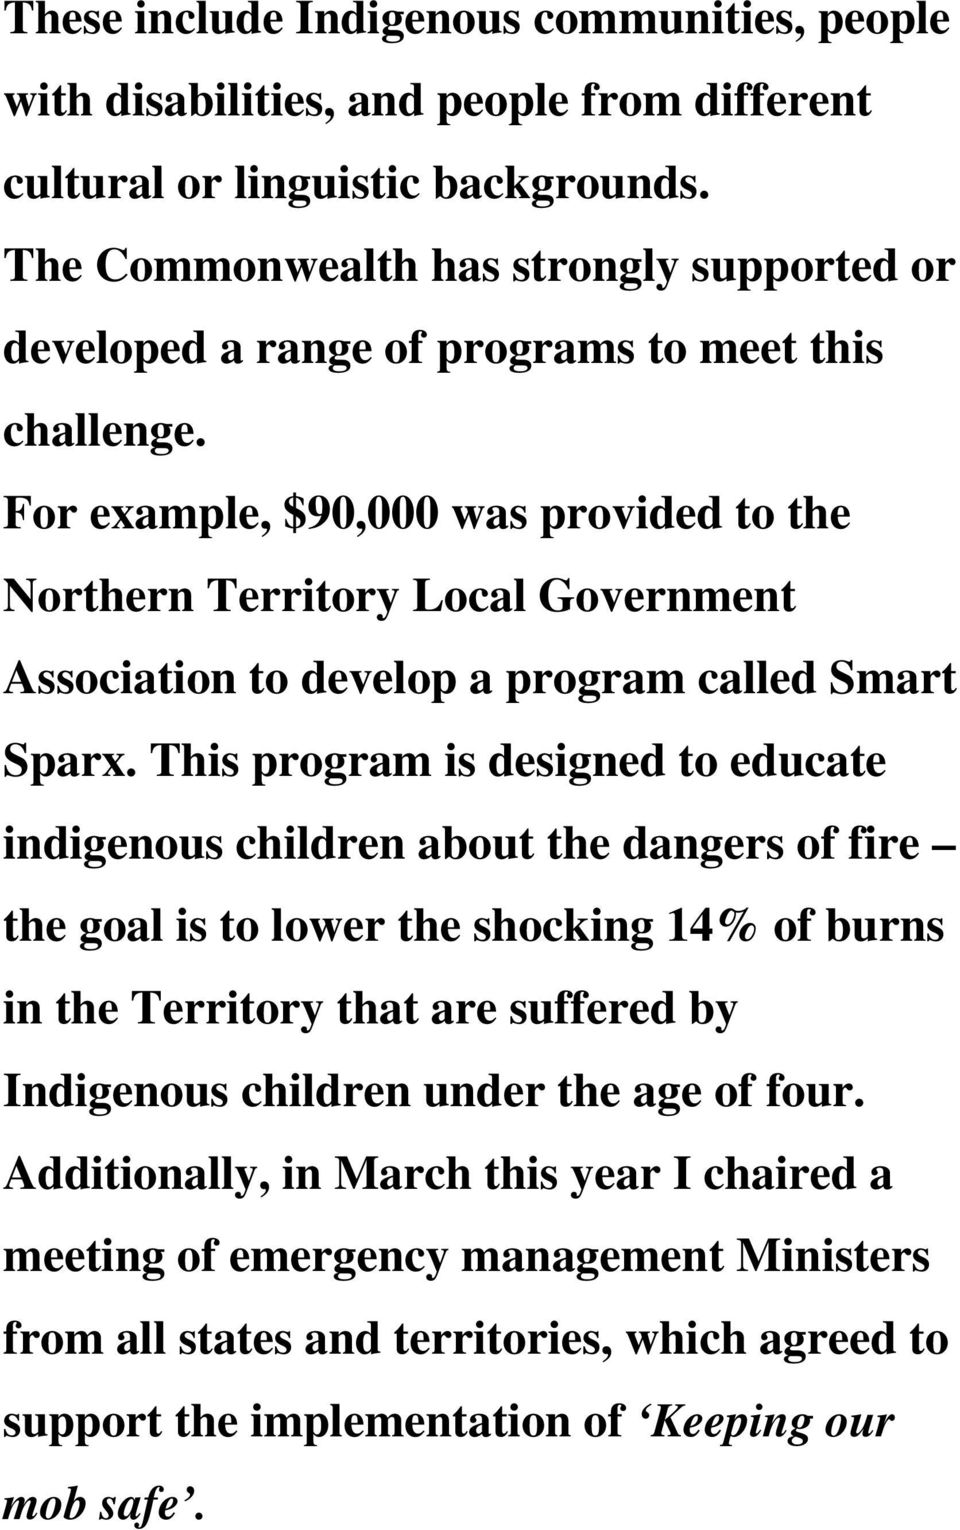 For example, $90,000 was provided to the Northern Territory Local Government Association to develop a program called Smart Sparx.